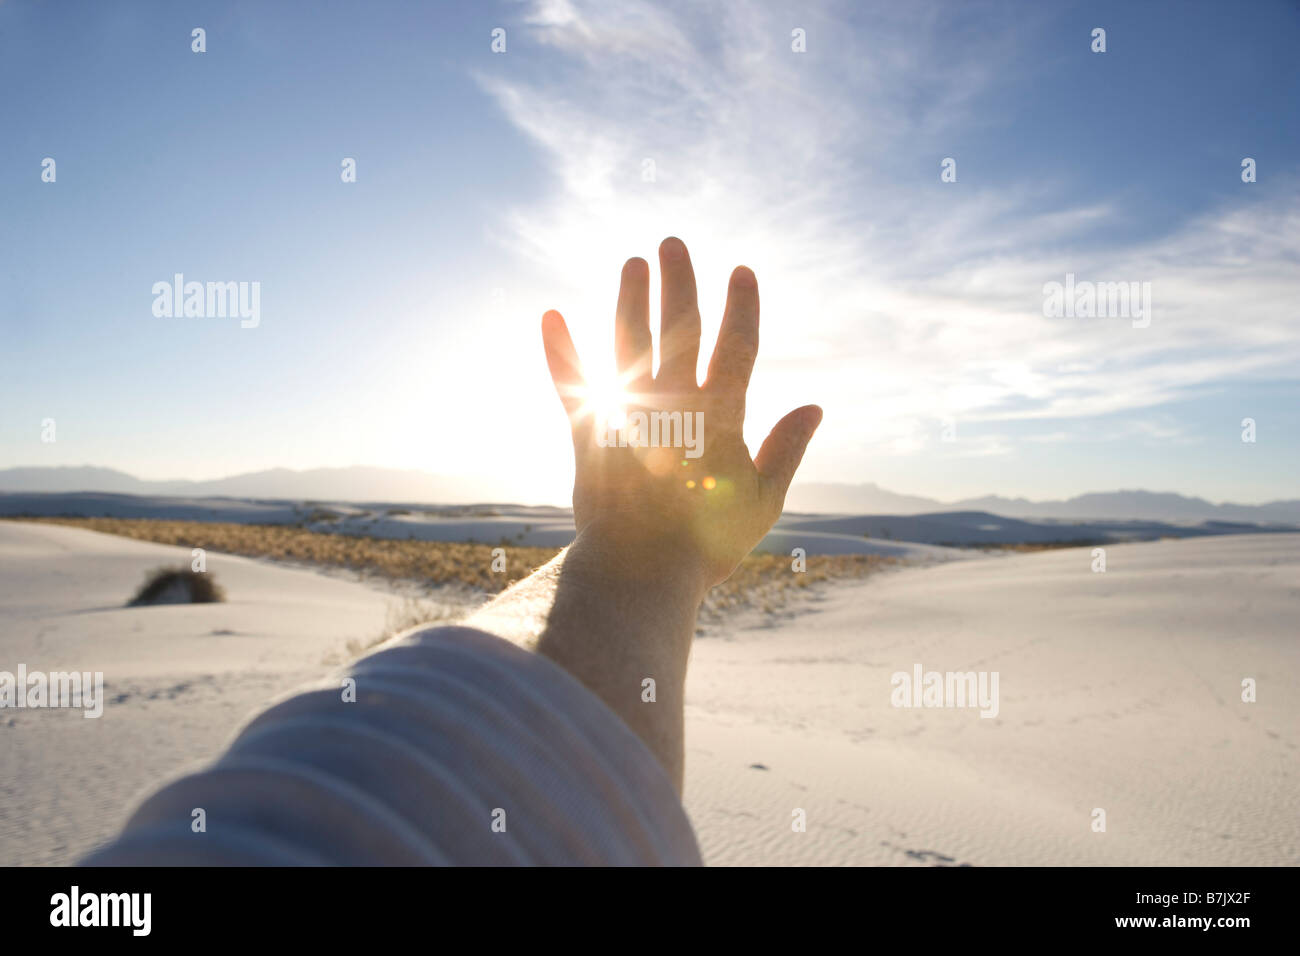 hand being held up to the sun with blue sky, sand dunes - Stock Image